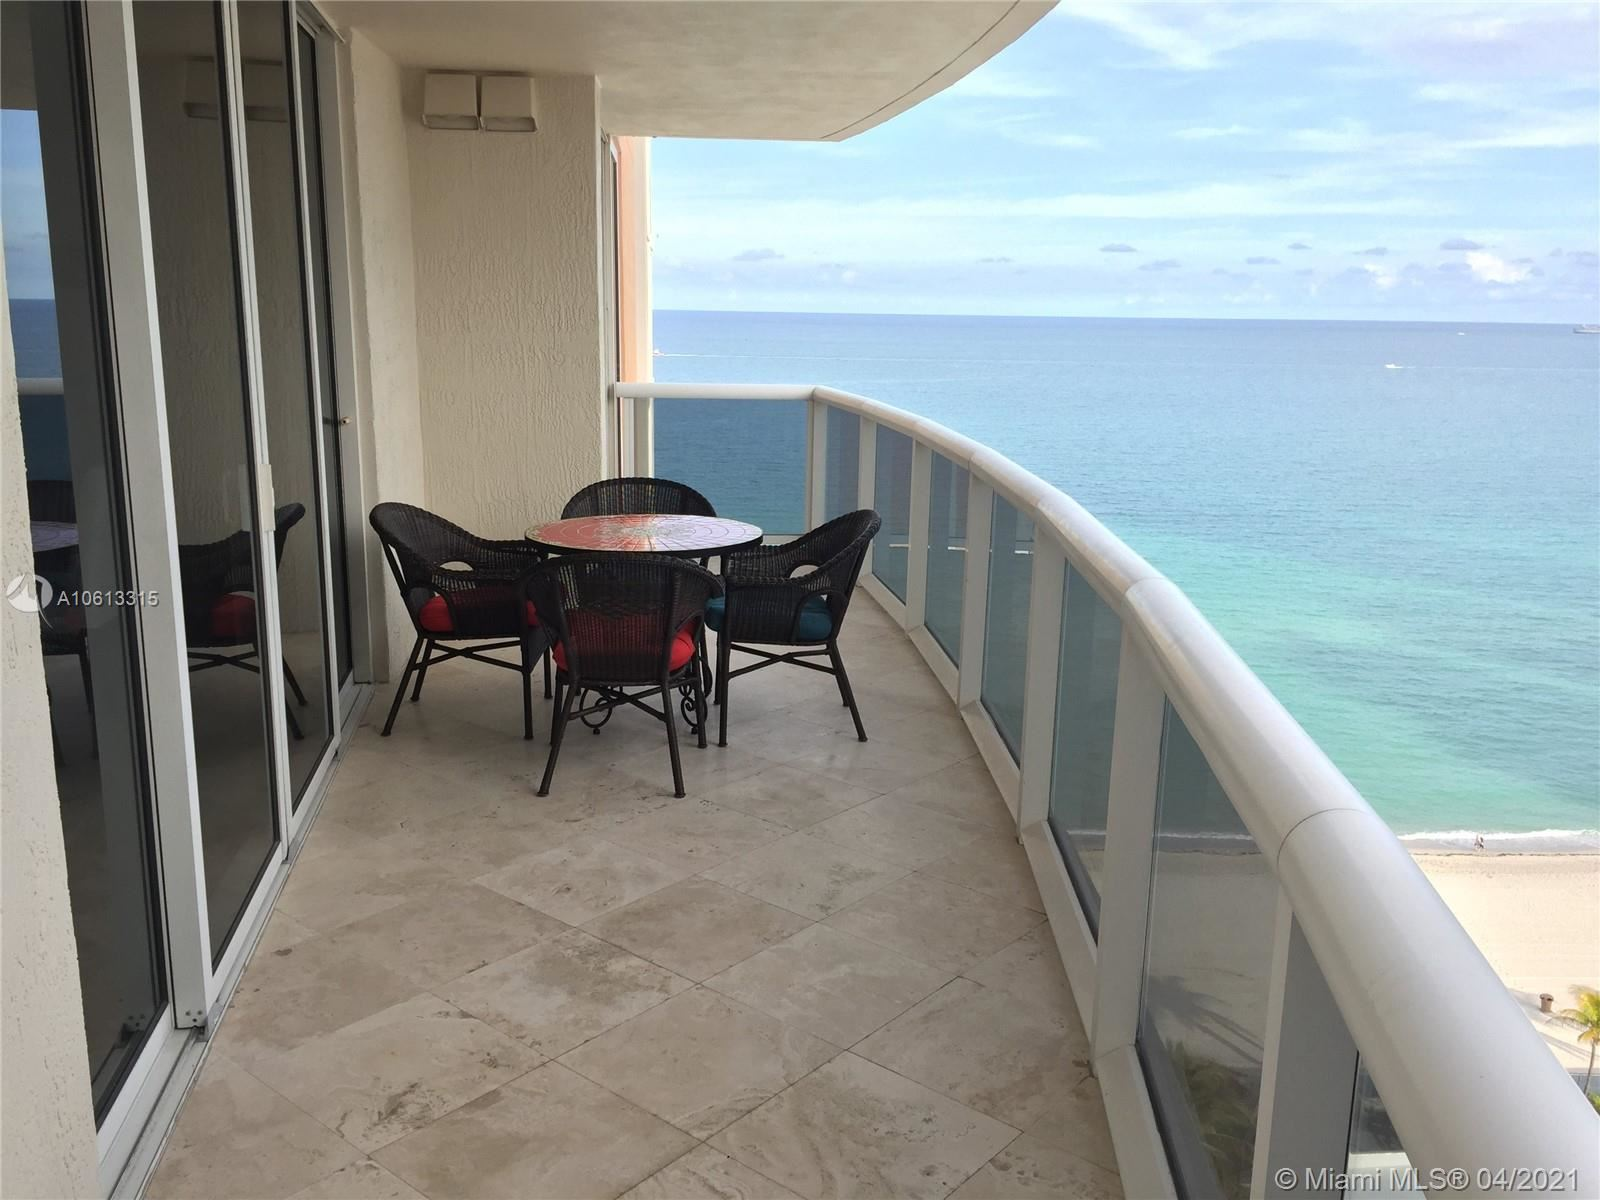 18911 Collins Ave #1803, Sunny Isles, FL 33160 - #: A10613315